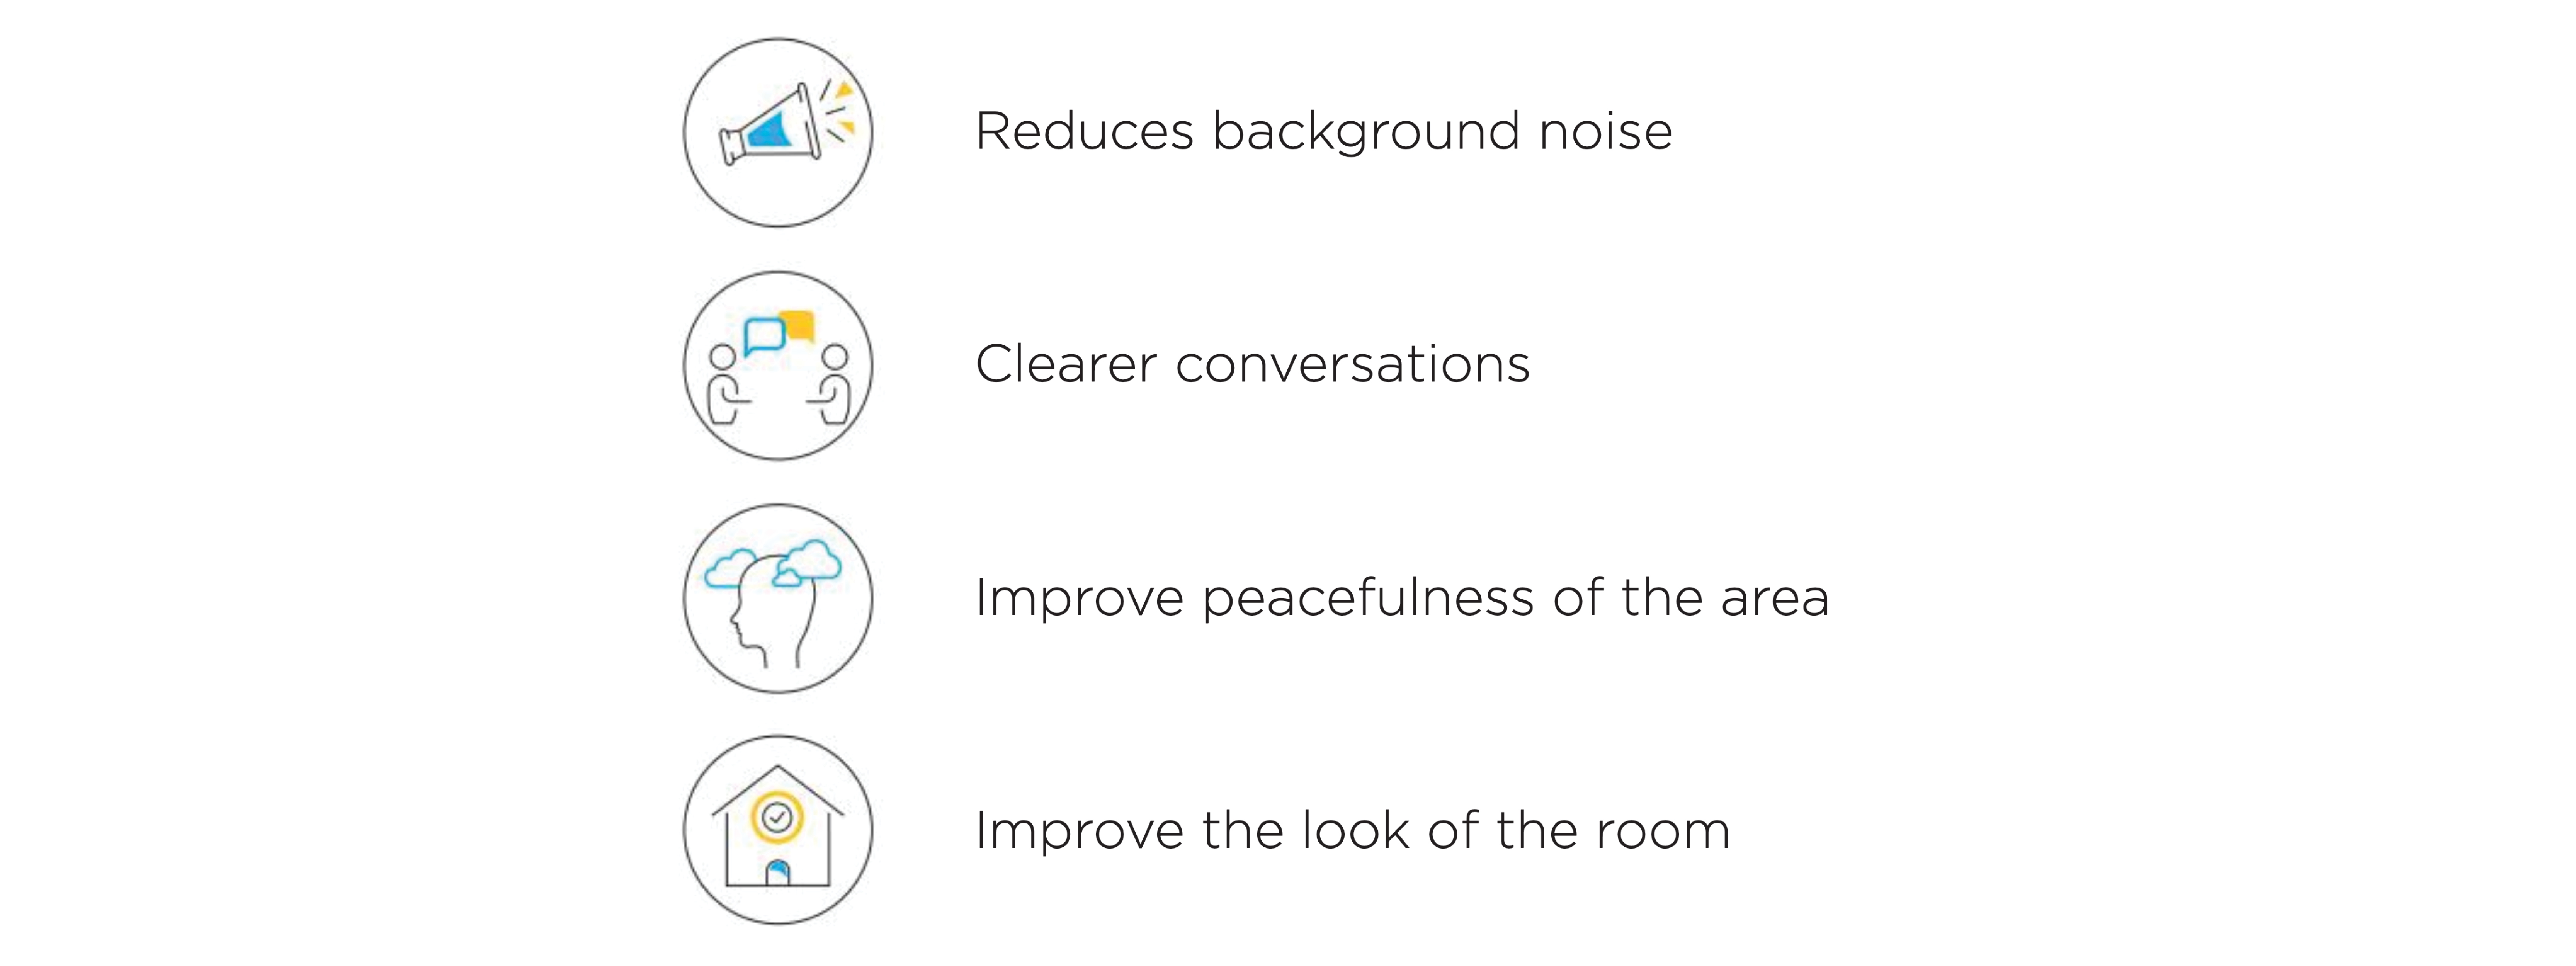 Benefits of acoustic lighting and acoustic felt in interior design.